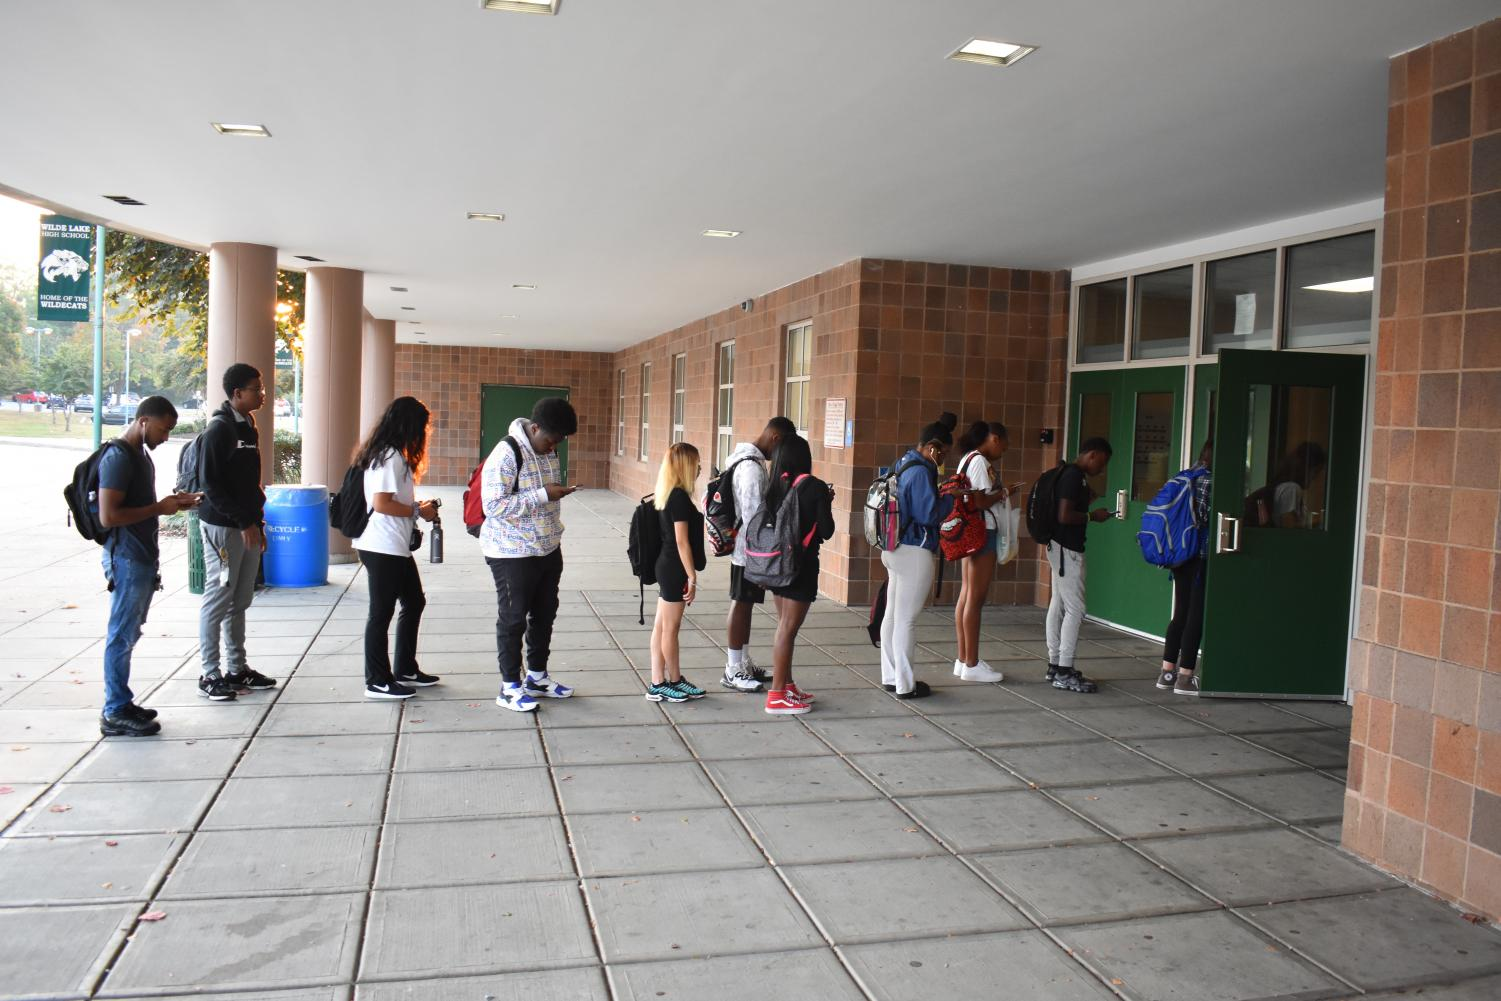 Numerous students are seen lined up outside of the main entrance awaiting a tardy pass.